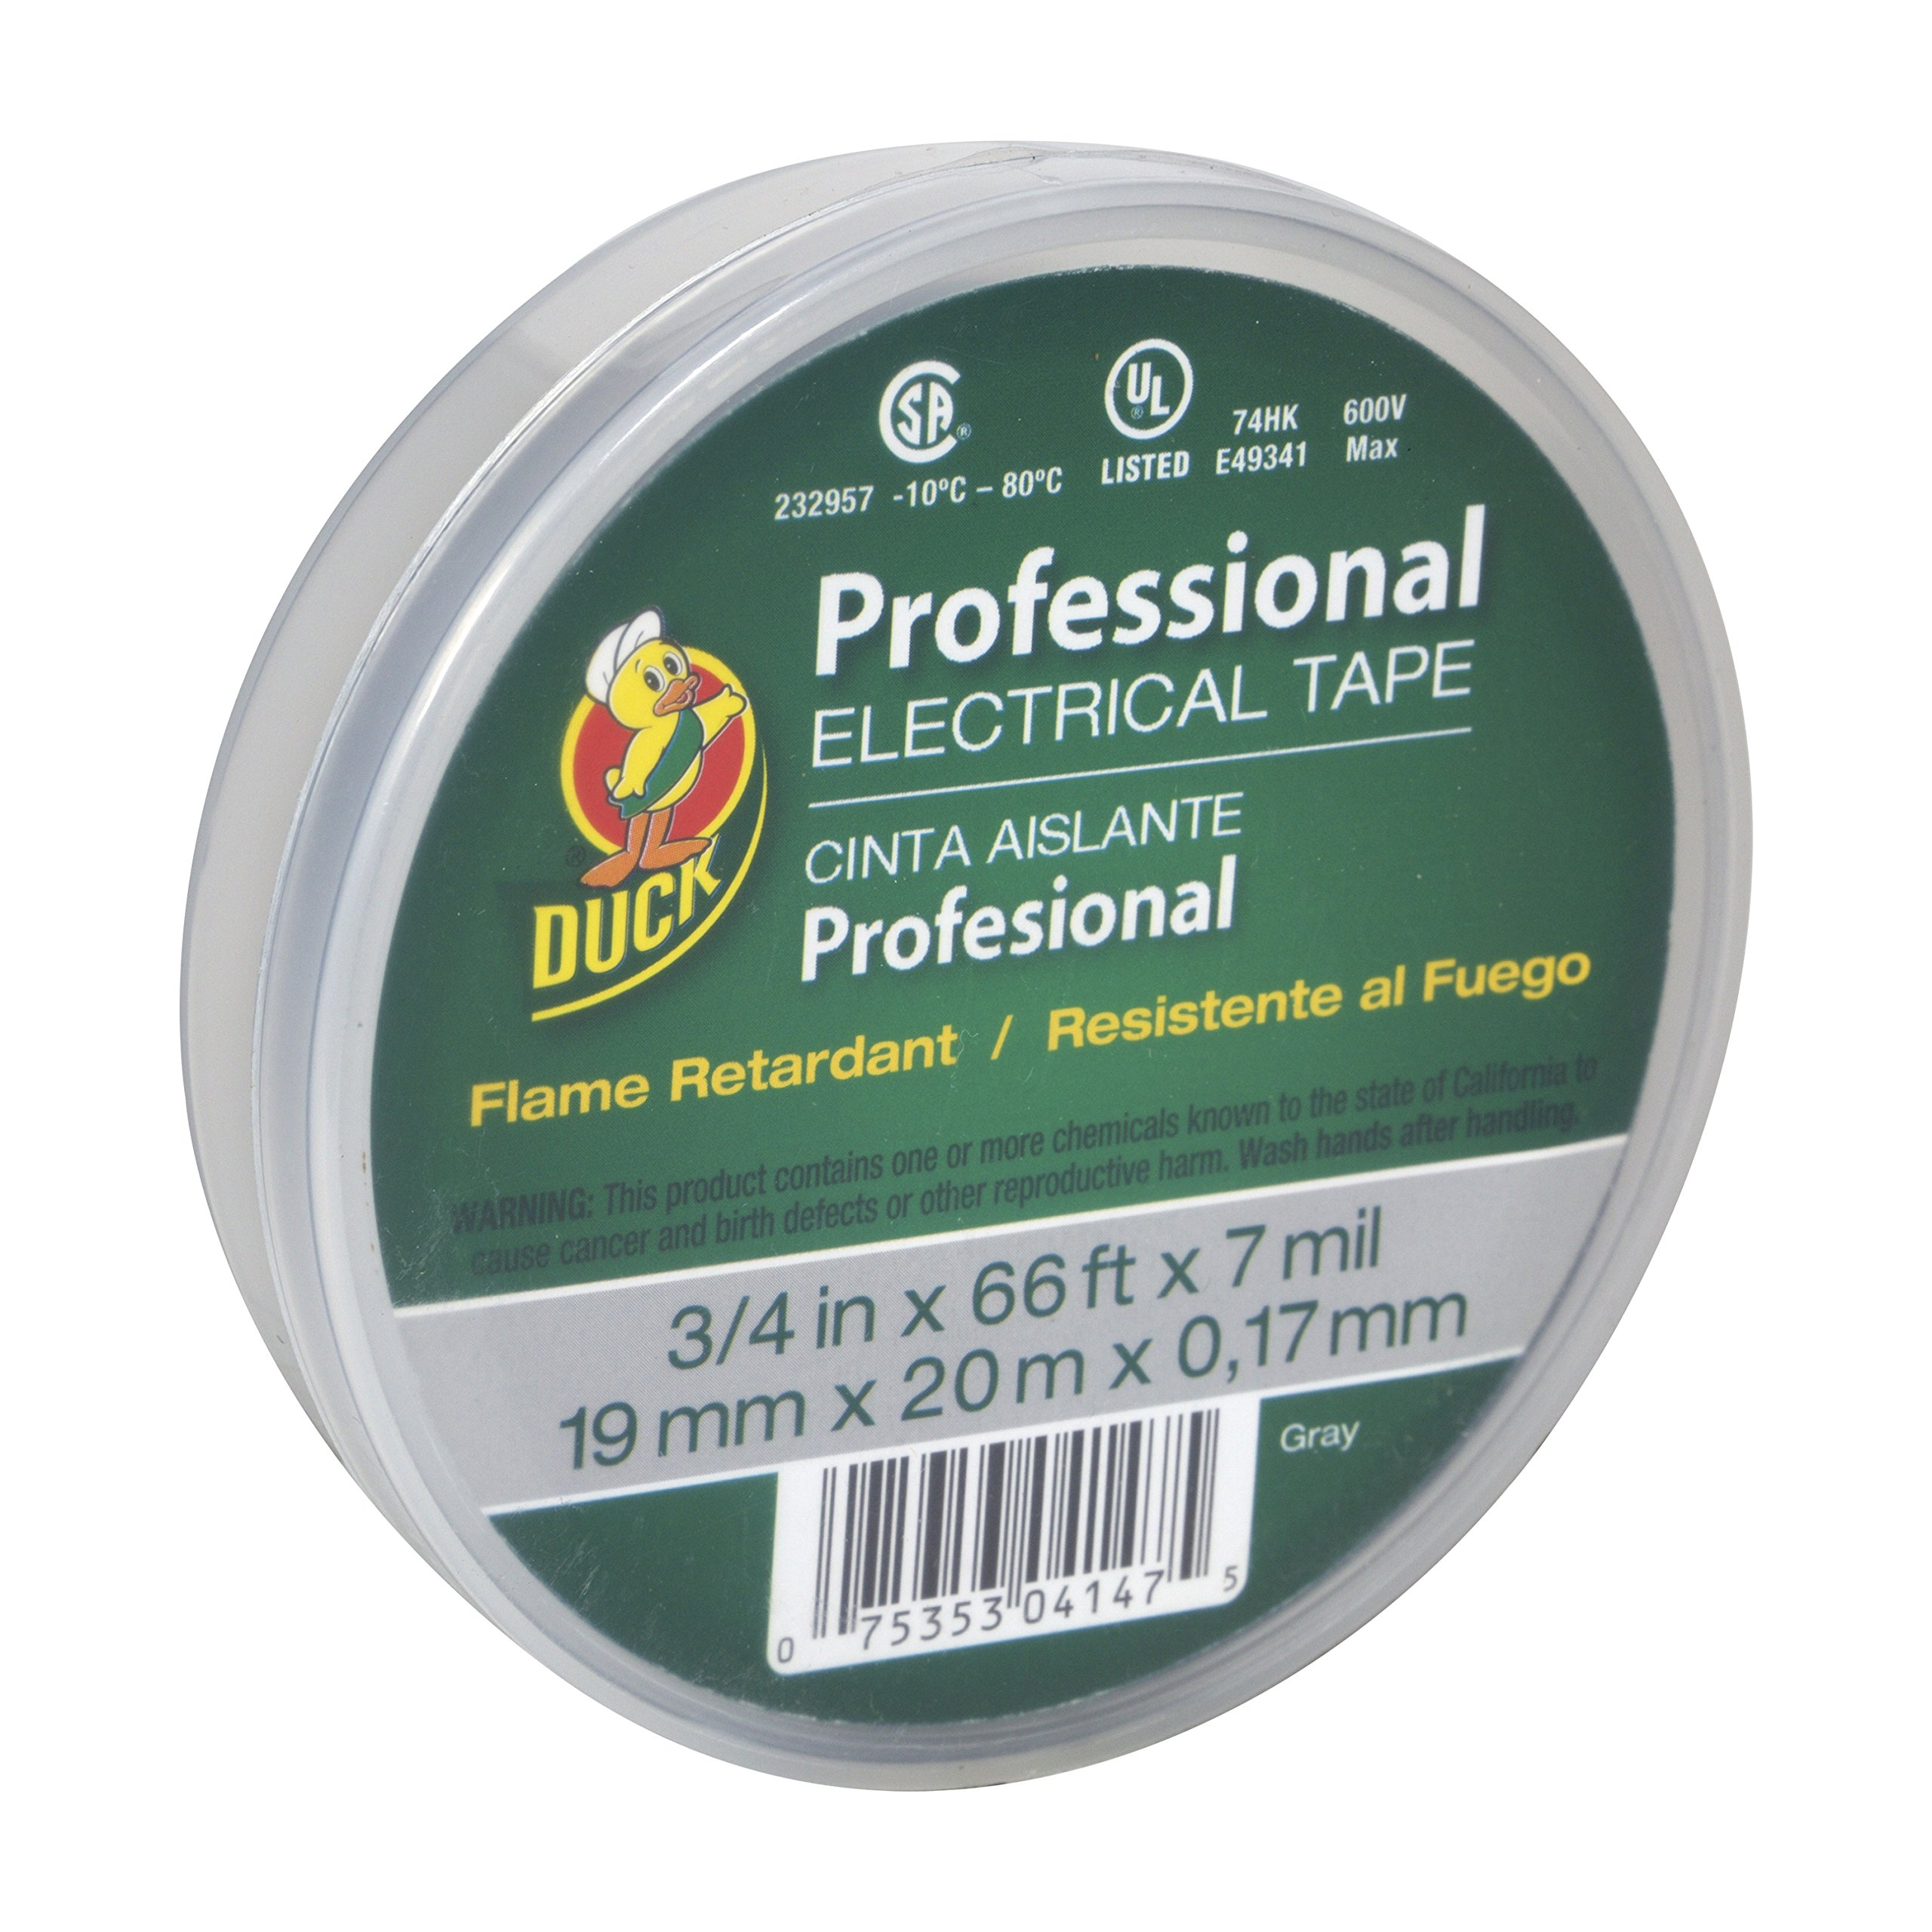 Duck Brand 299018 Professional Grade Electrical Tape, 3/4-Inch by 66 Feet, Single Roll, Gray